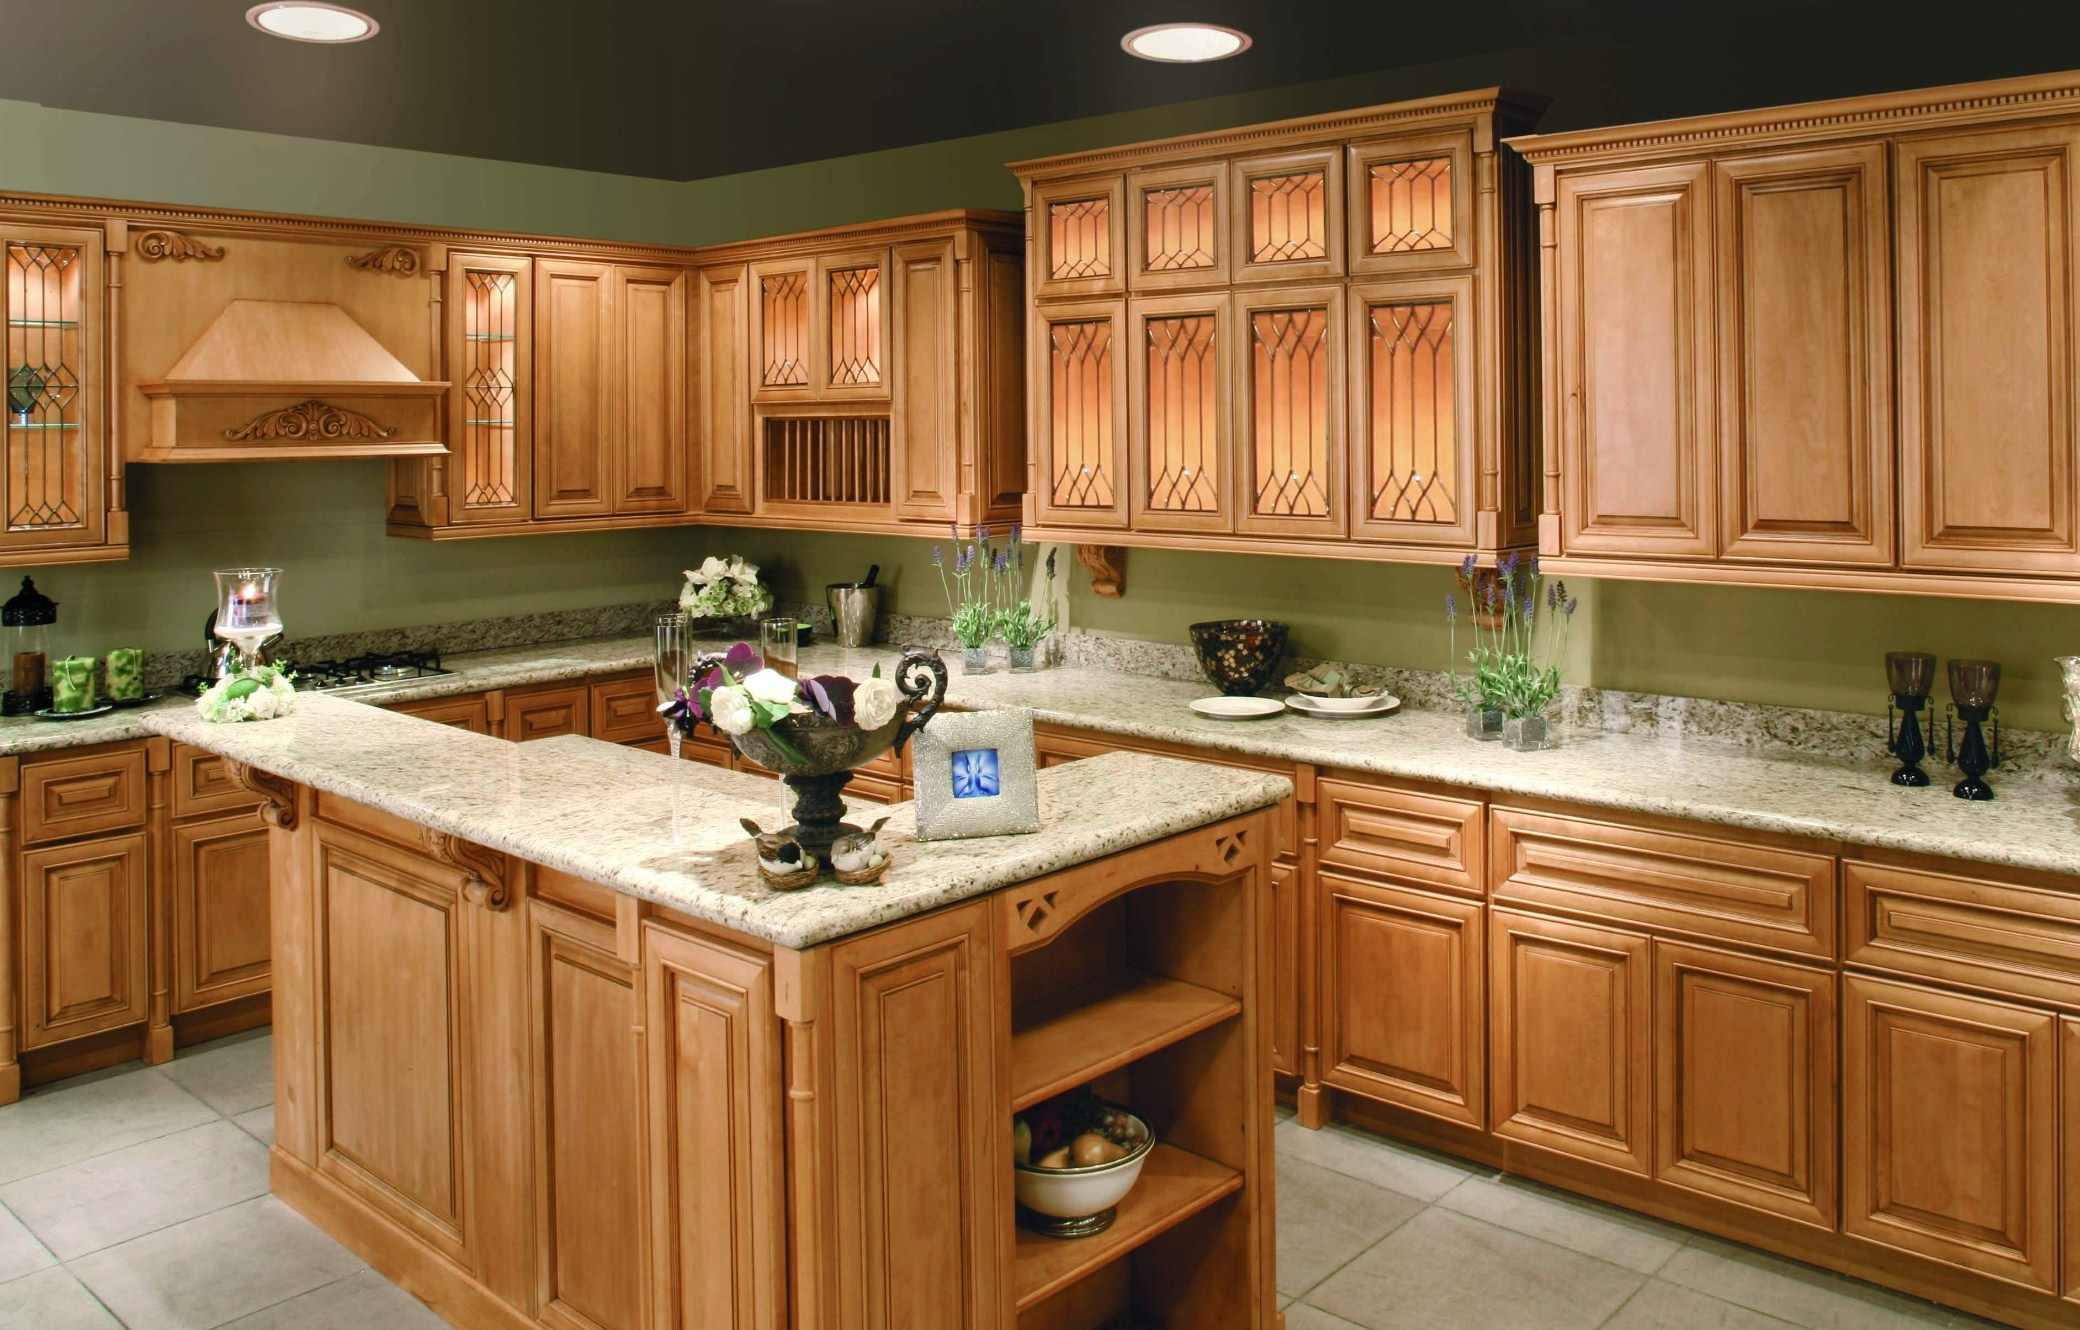 Permalink to Oak Cabinets Kitchen Countertops